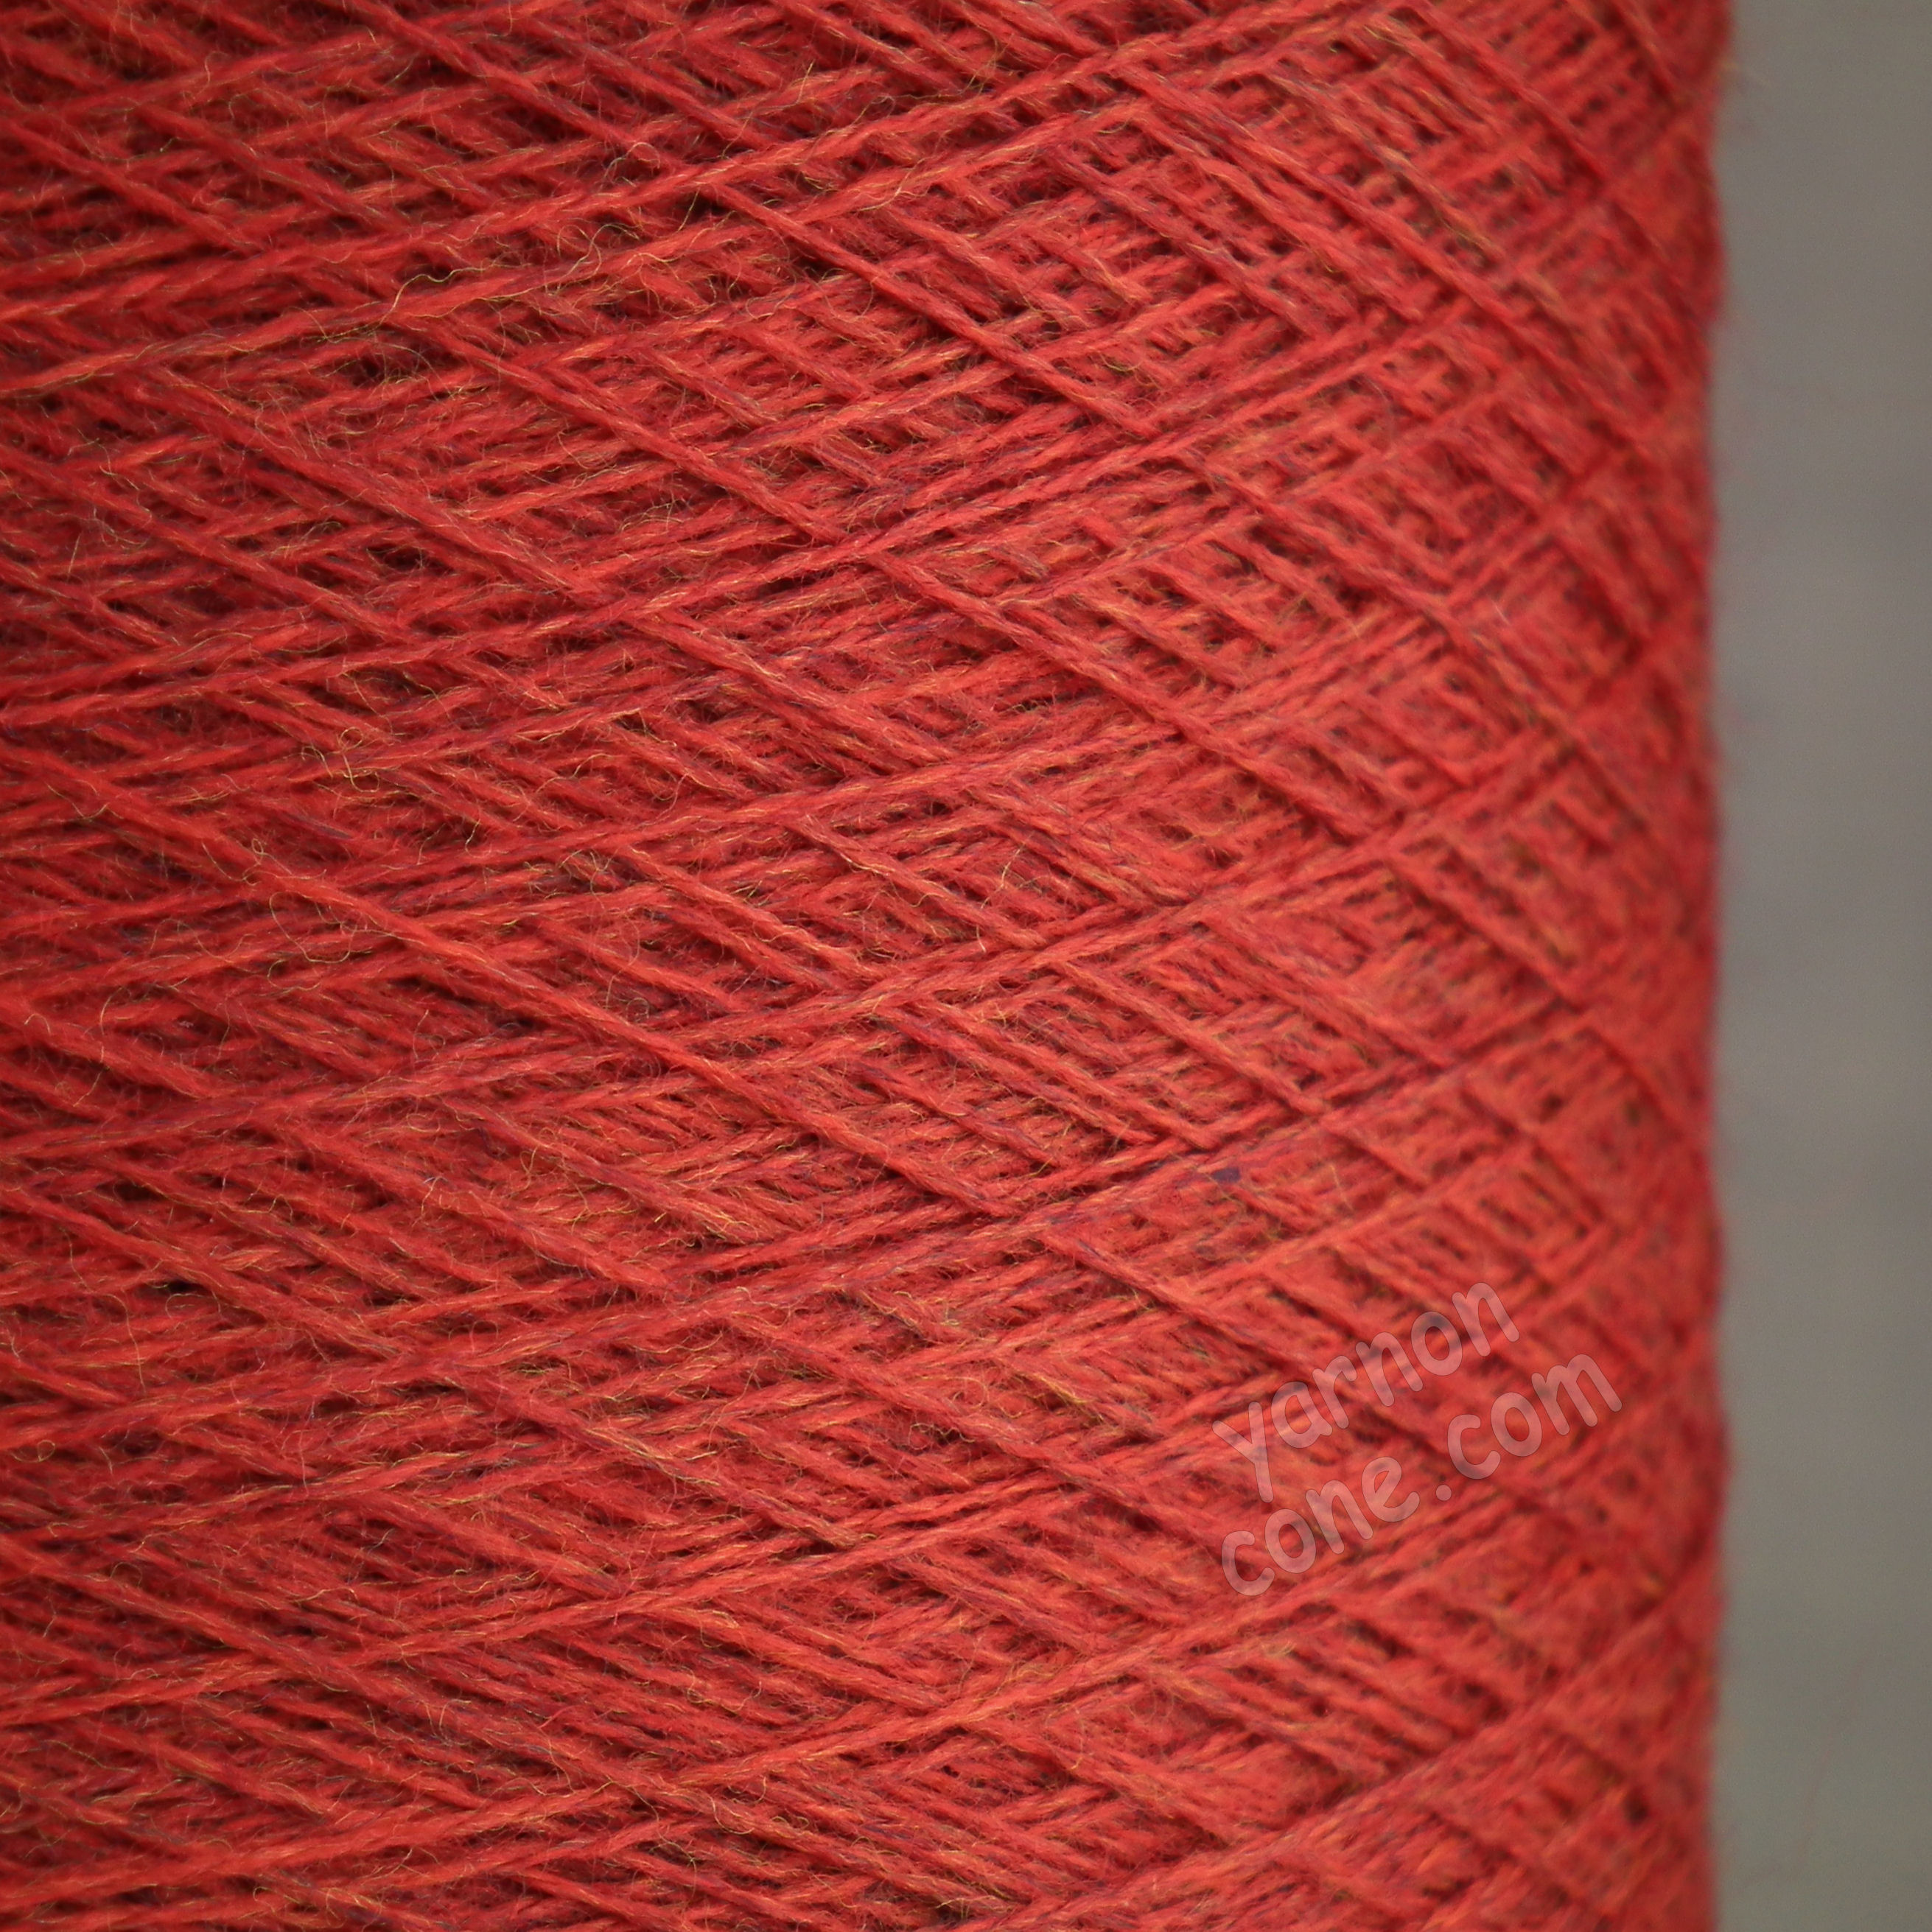 2/30NM zegna baruffa cashwool pure merino knitting wool laceweight yarn cone carmine red